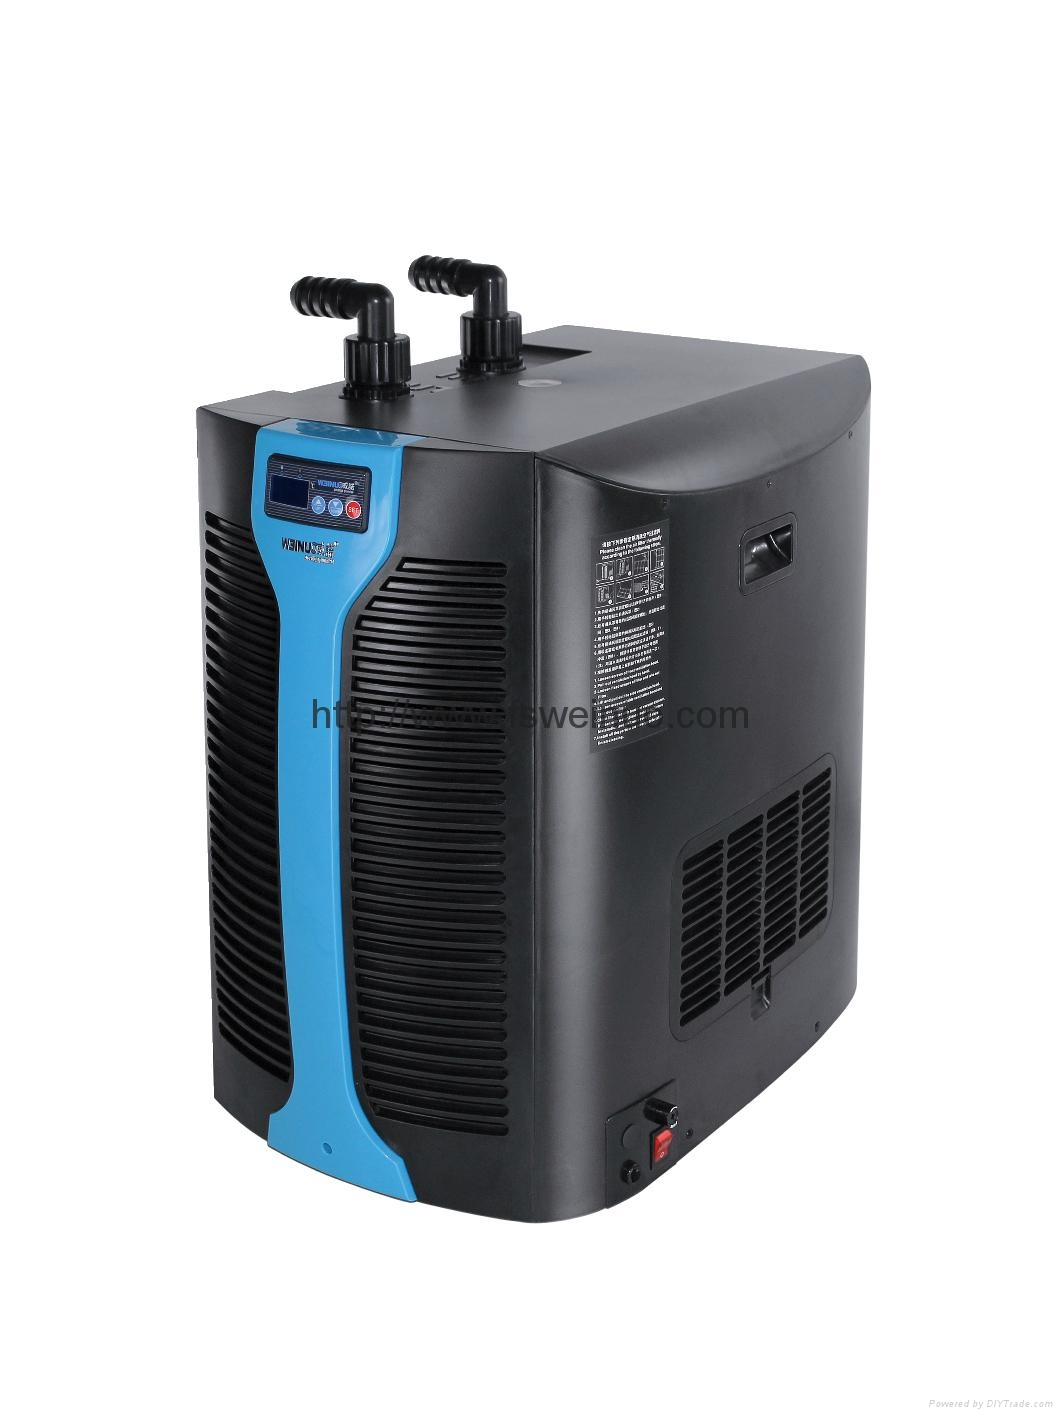 mini water chiller for 1000l fish tank wn 1c1000cn